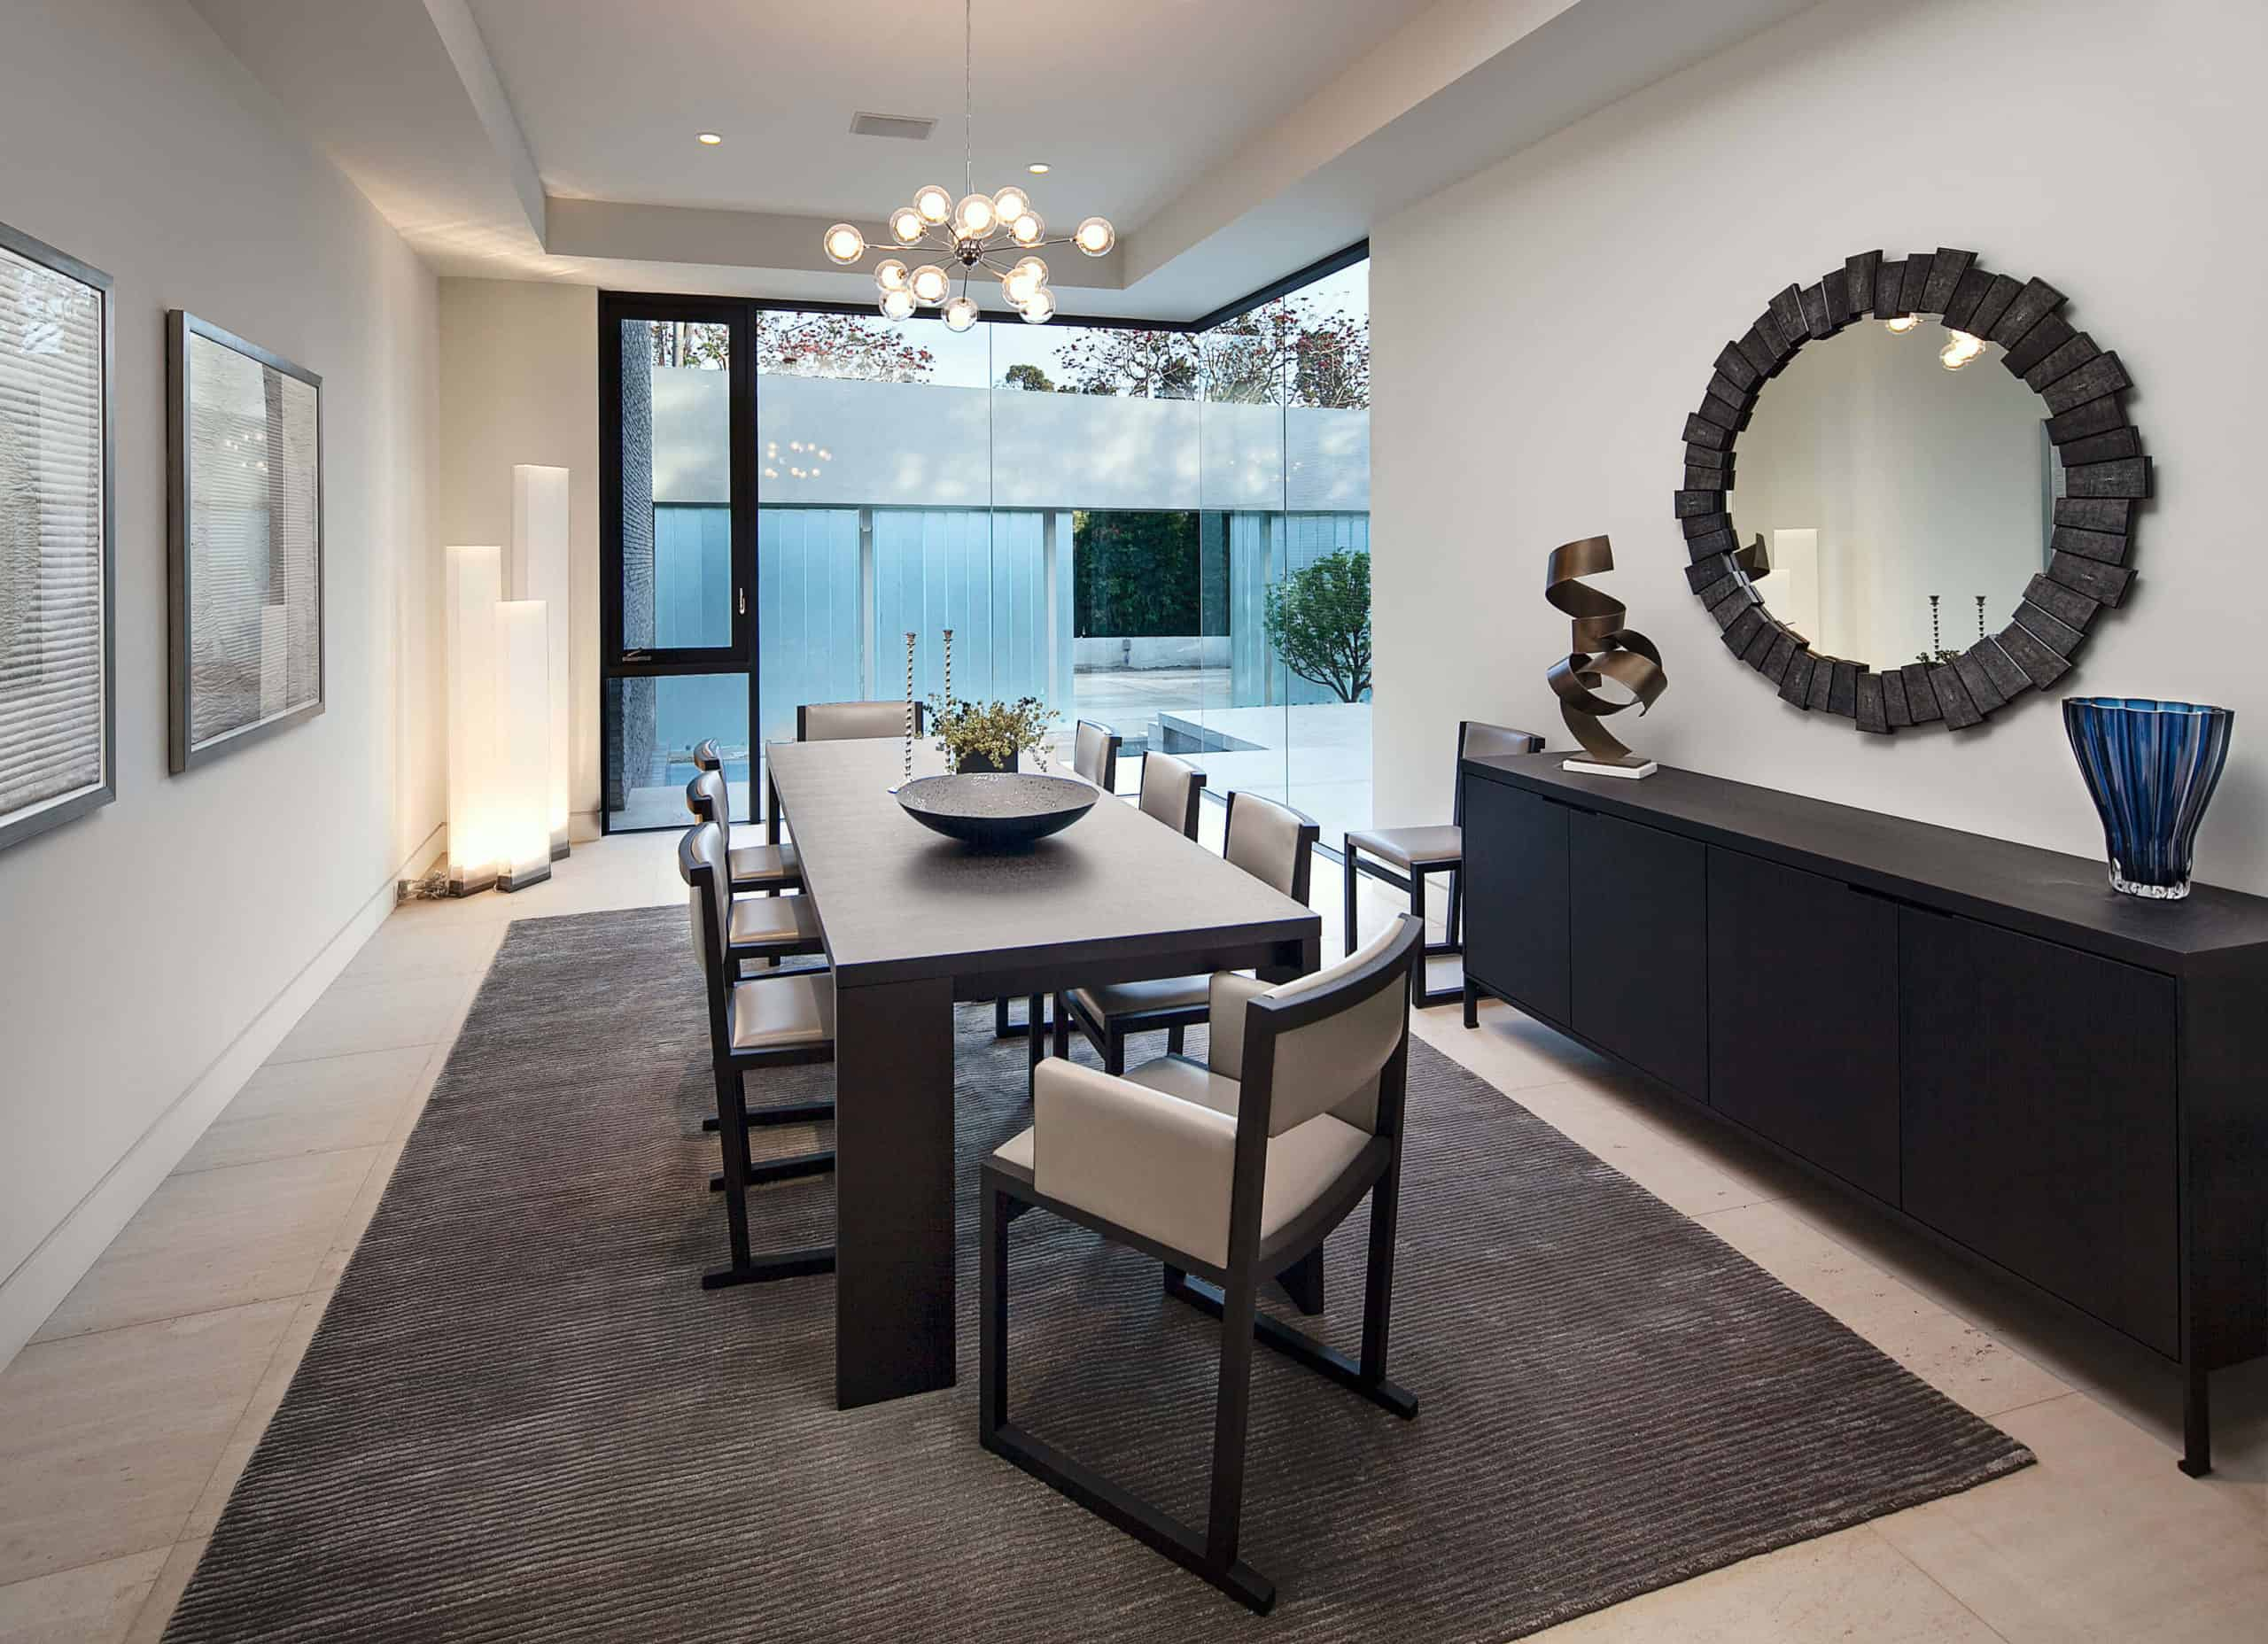 The formal dining room features elegant, lengthy dark wood table with matching cabinetry, unique art pieces scattered throughout, and pristine view toward the front courtyard.